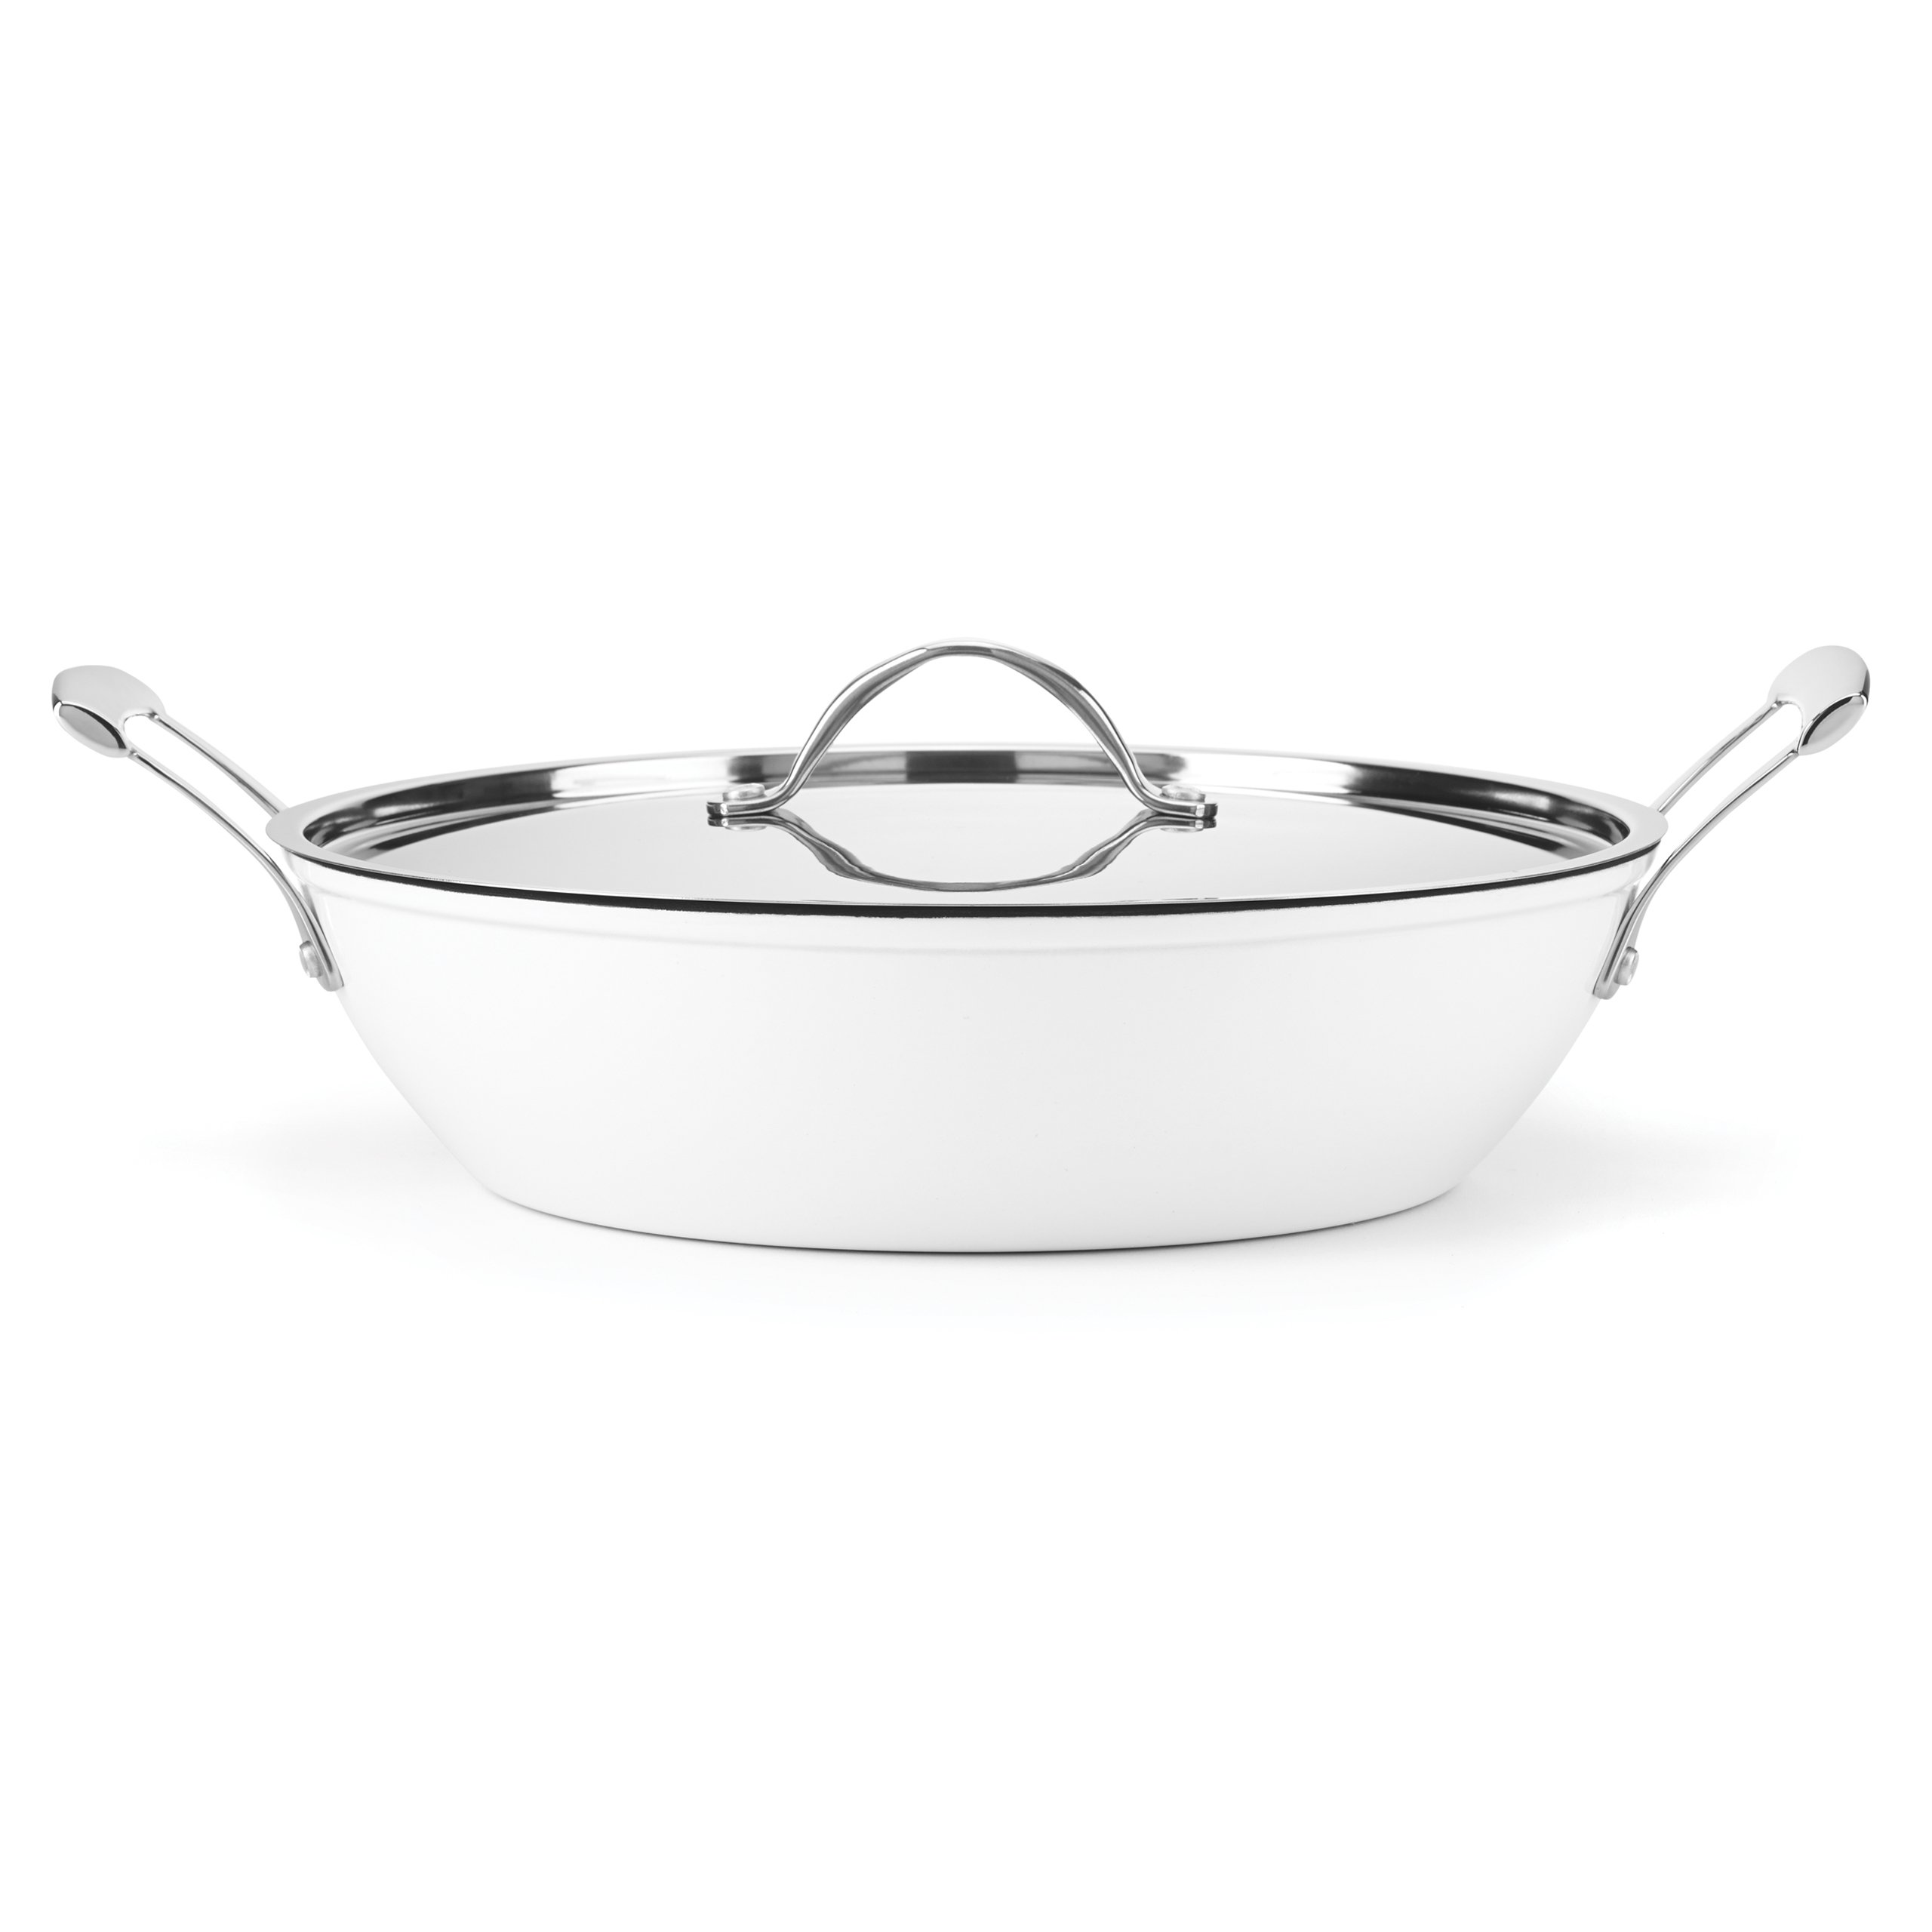 Food & Wine For Gorham Light Cast Iron 4 Quart Braiser, White